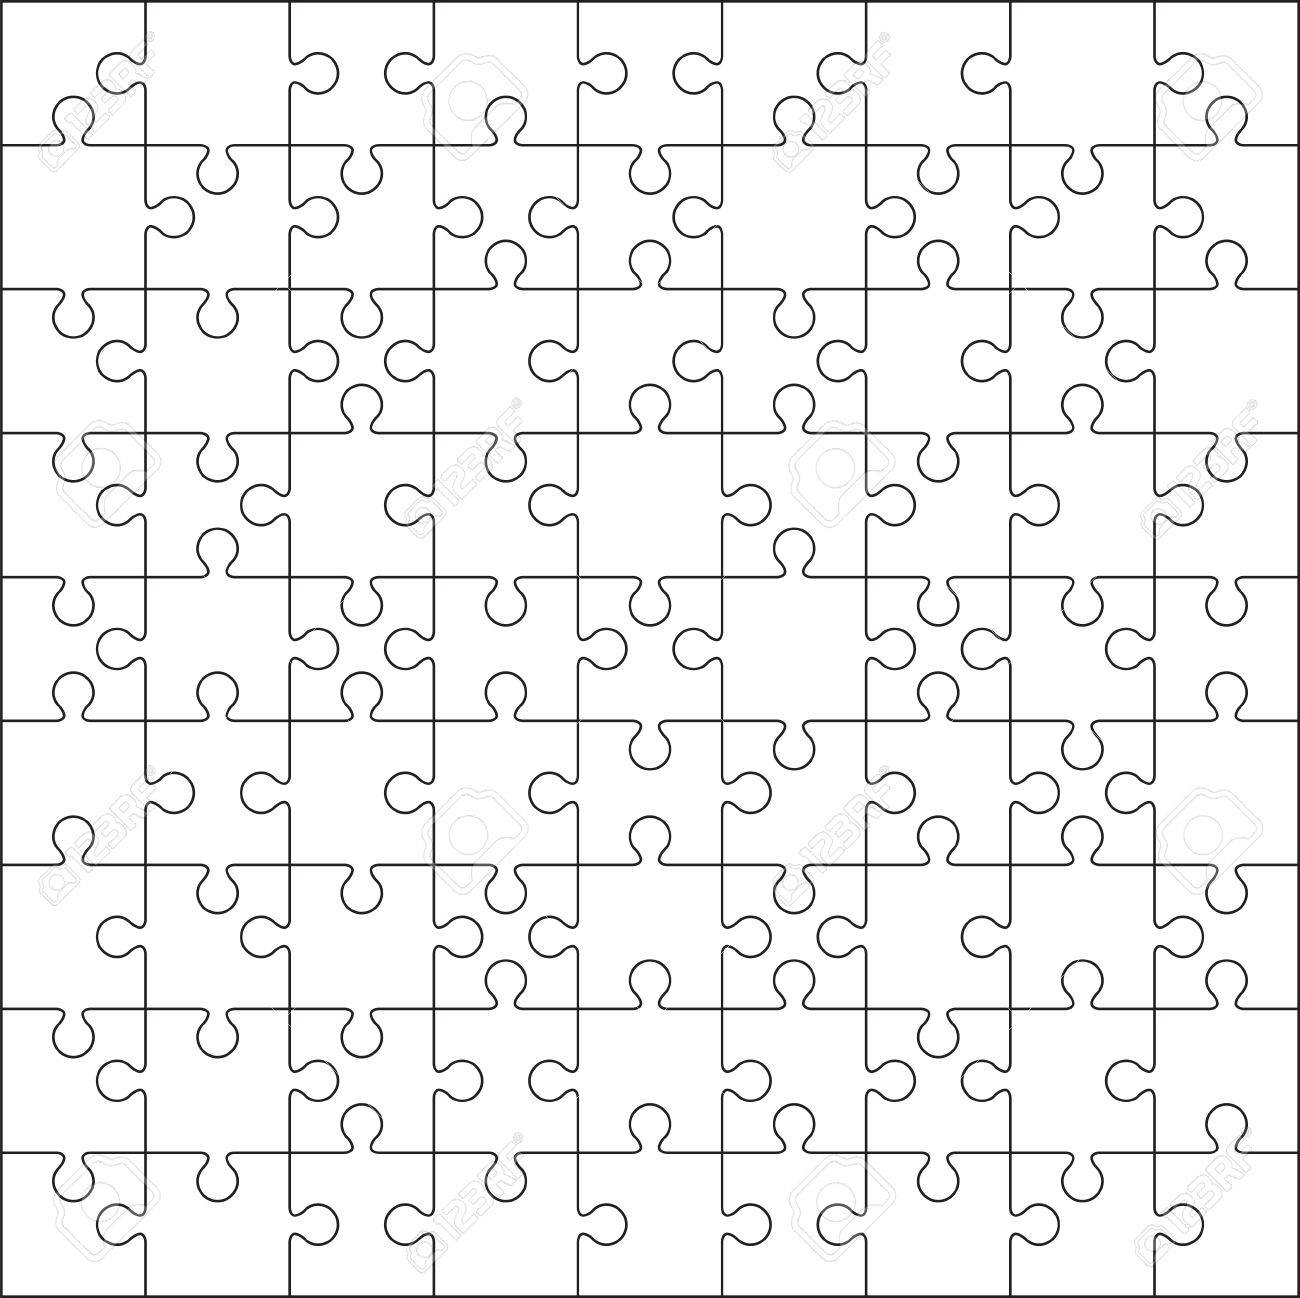 100 Jigsaw Puzzle Blank Template Or Cutting Guidelines Stock Vector